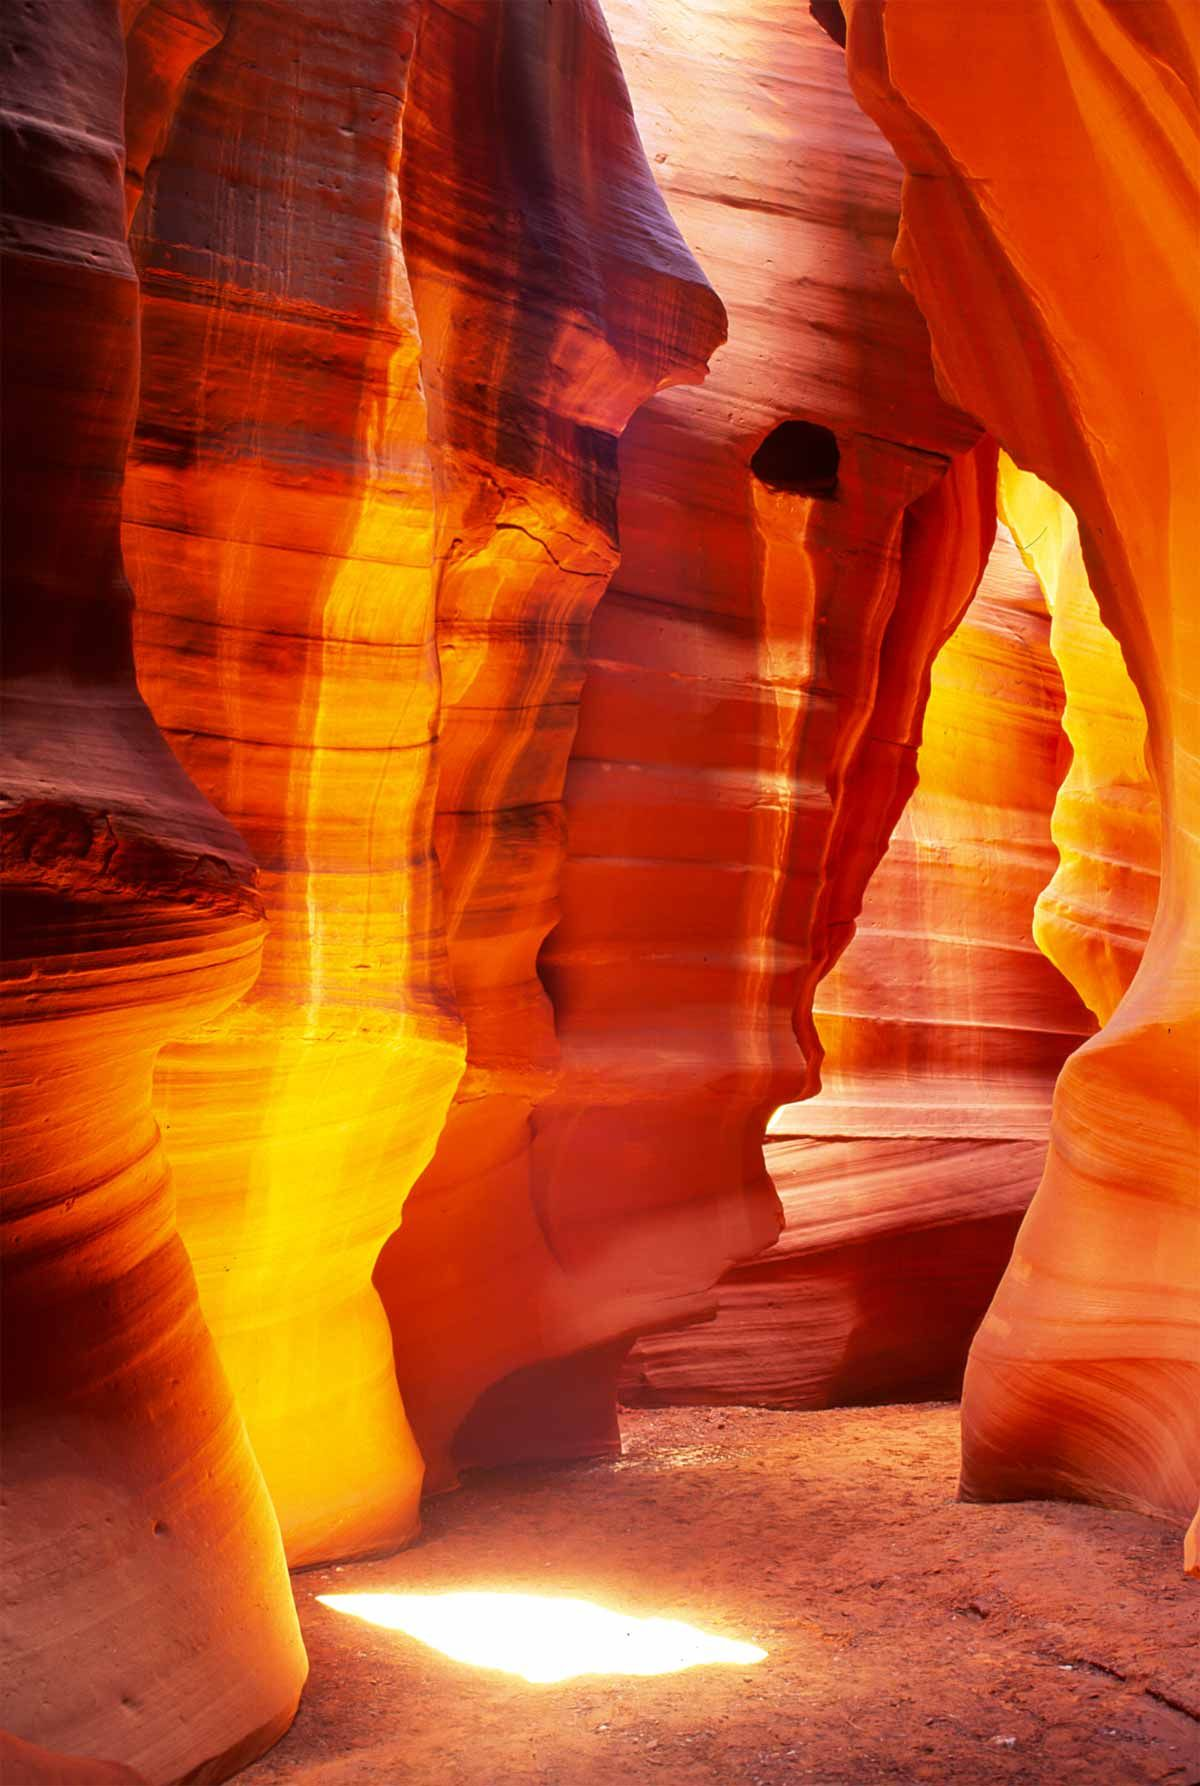 Antelope Canyon is a famous gorge located in Page, Coconino County, Arizona, United States. For tourism, this place is popular as a place of interest to photographers and eyewash; portion is divided into two, namely the Upper Antelope Canyon (The krack) and Lower Antelope Canyon (The Corkscrew)